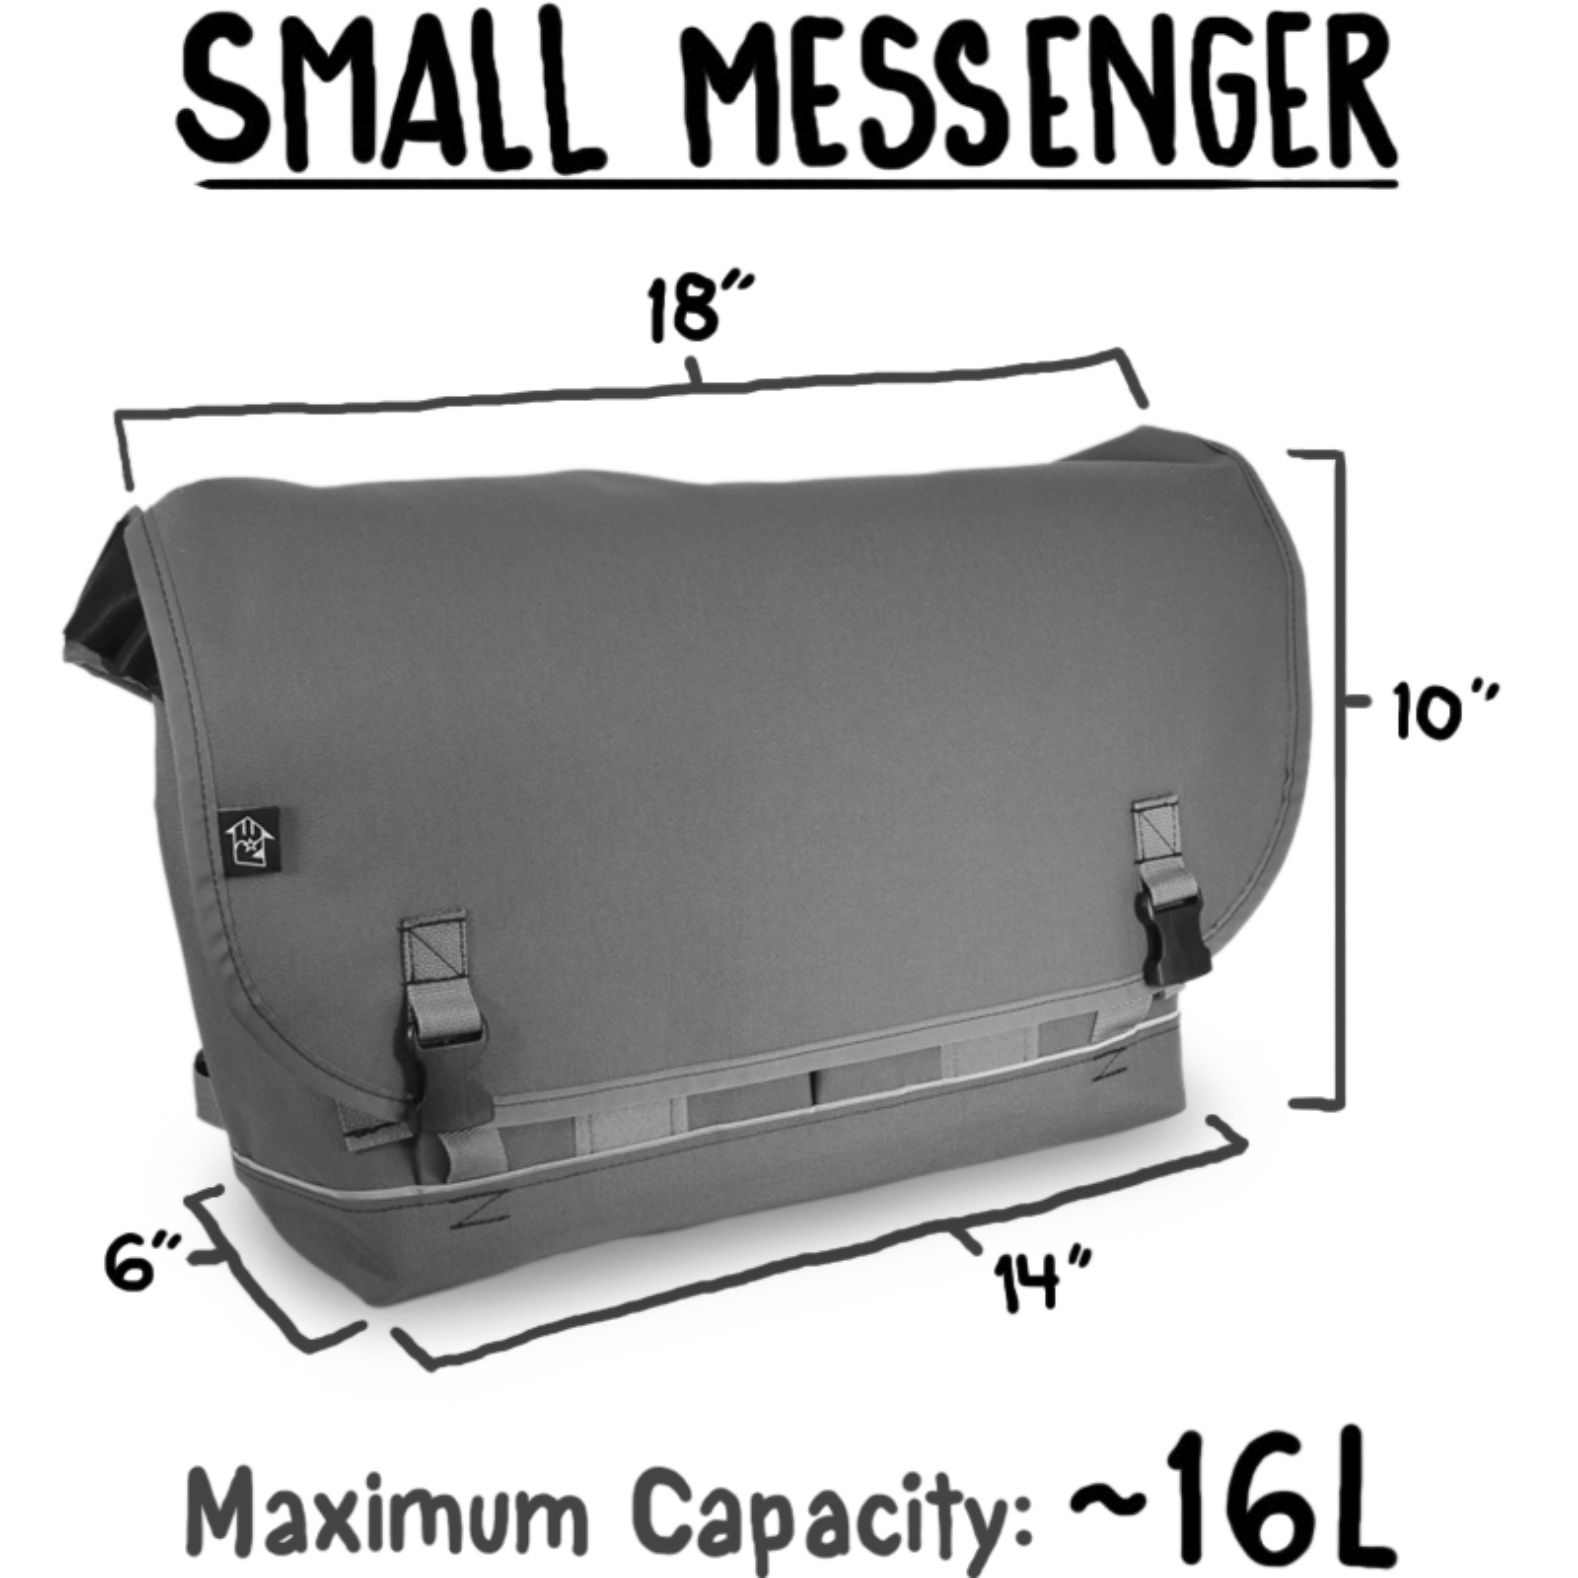 reload messenger small.png